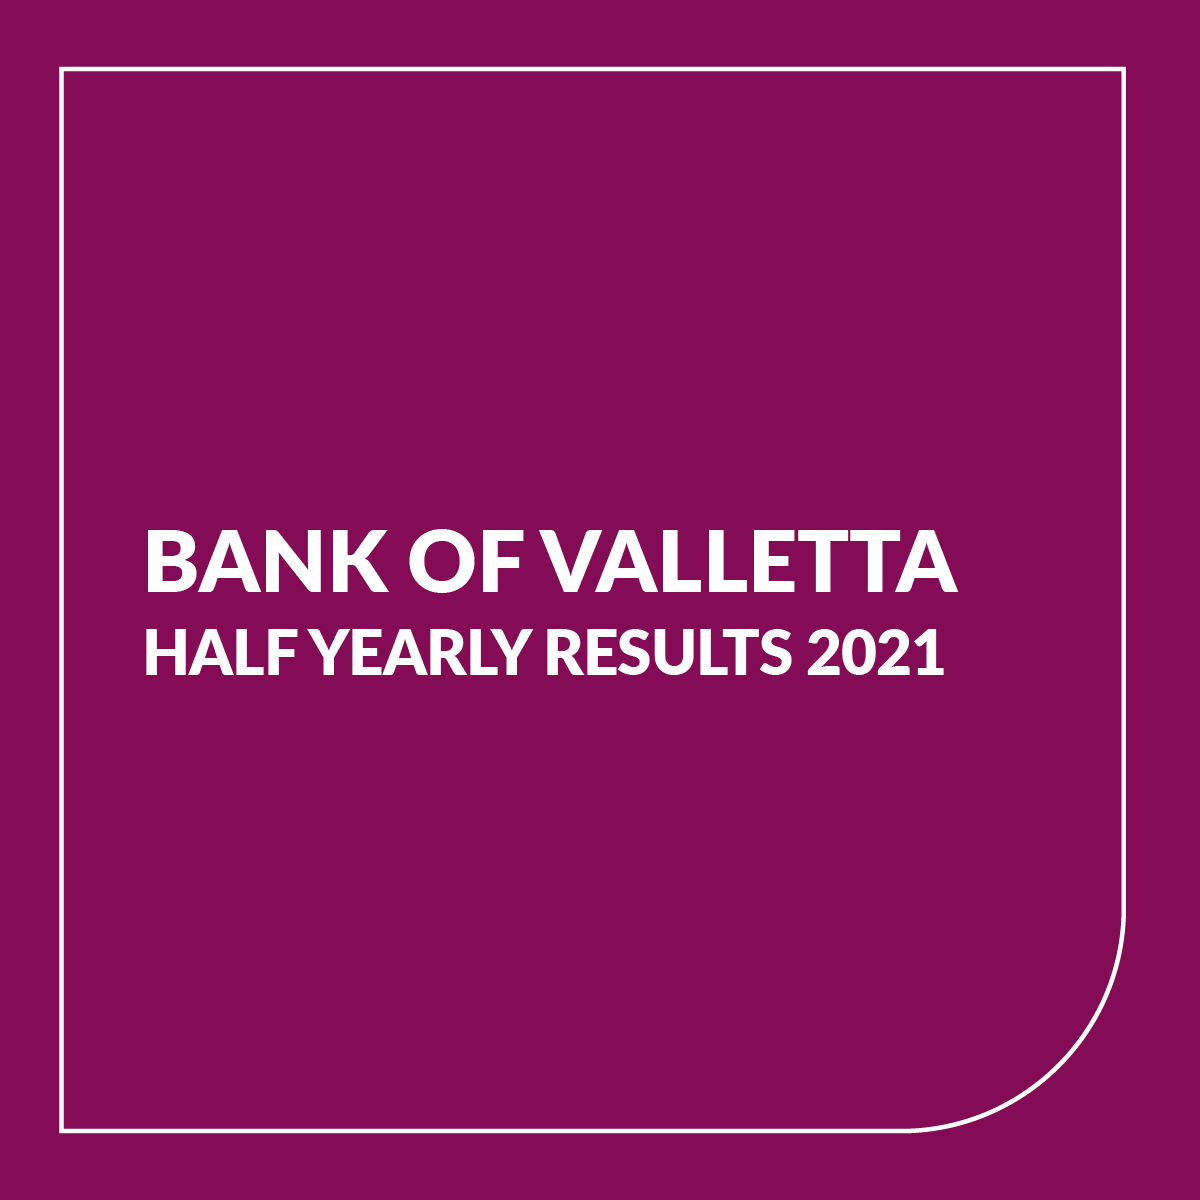 Bank of Valletta stages a revival in profitability